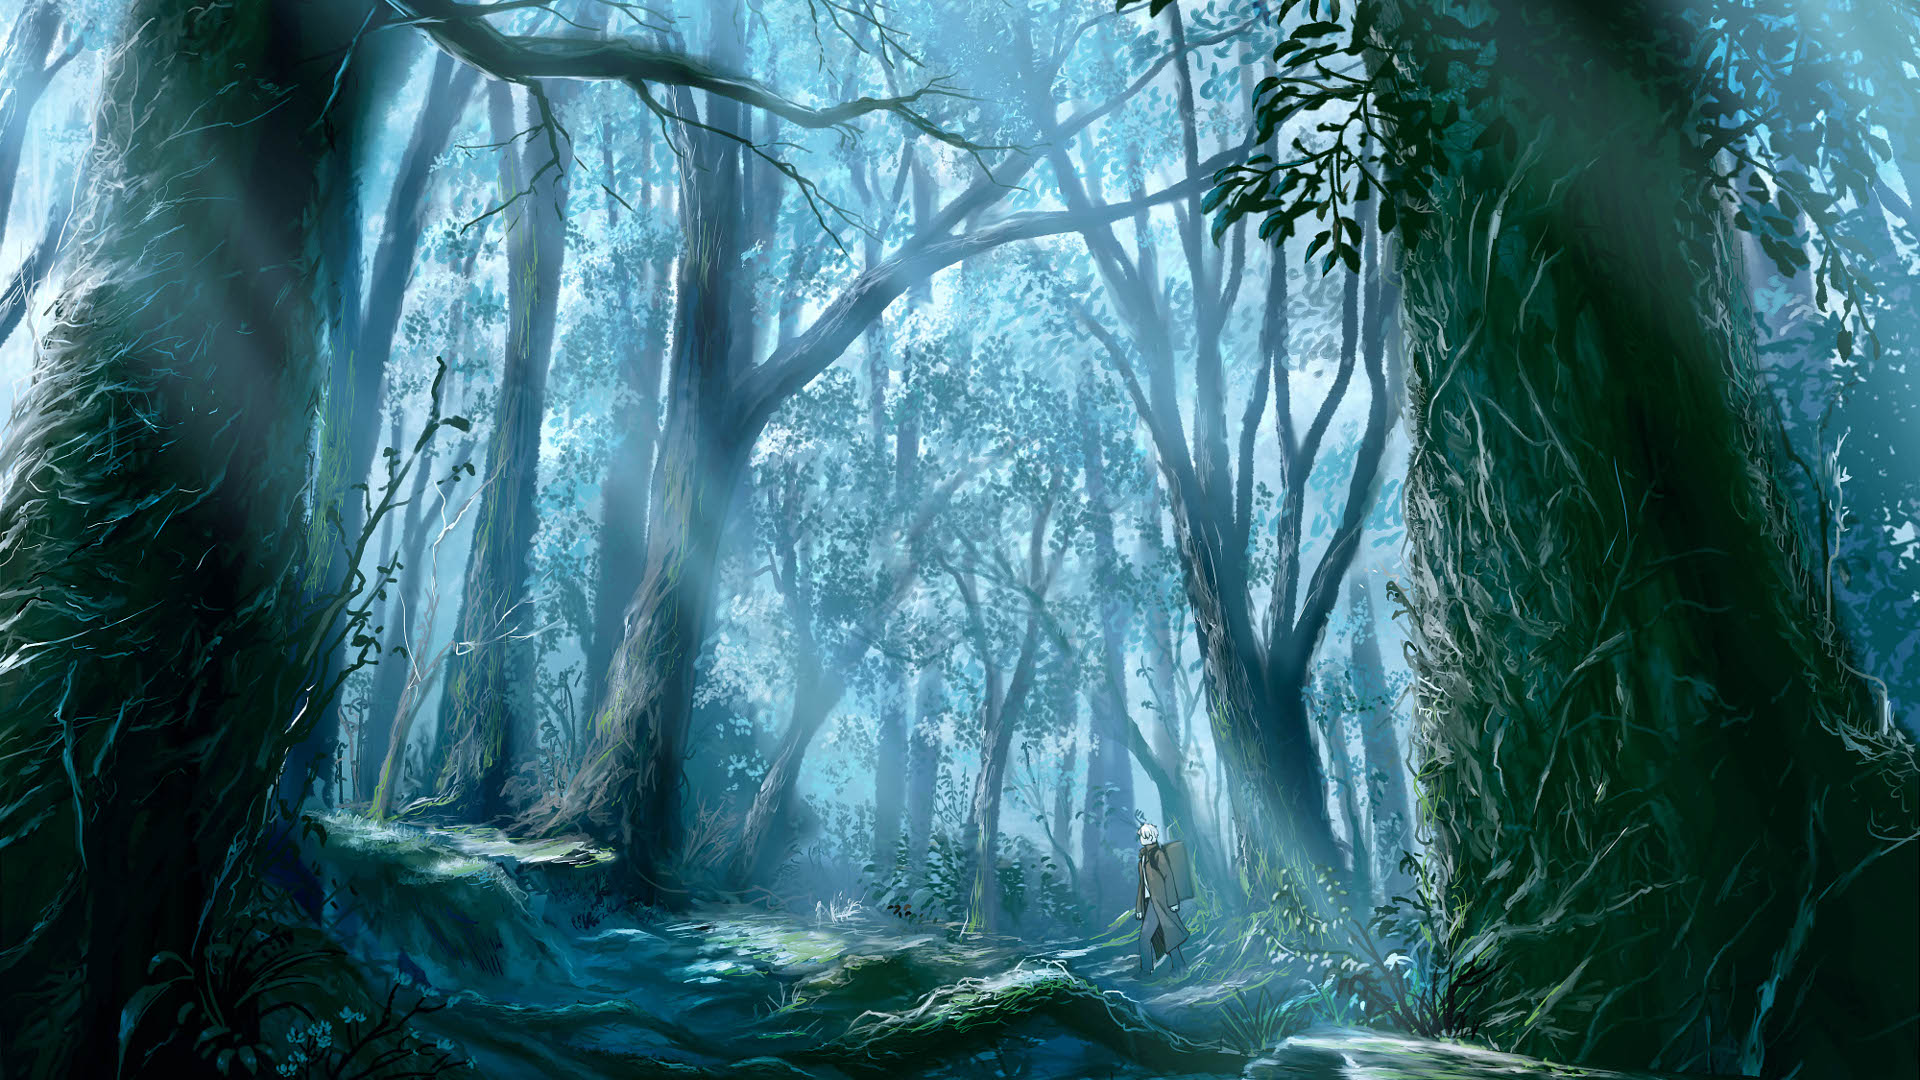 Anime Forest Wallpaper 1920x1080 Anime Forest 1920x1080